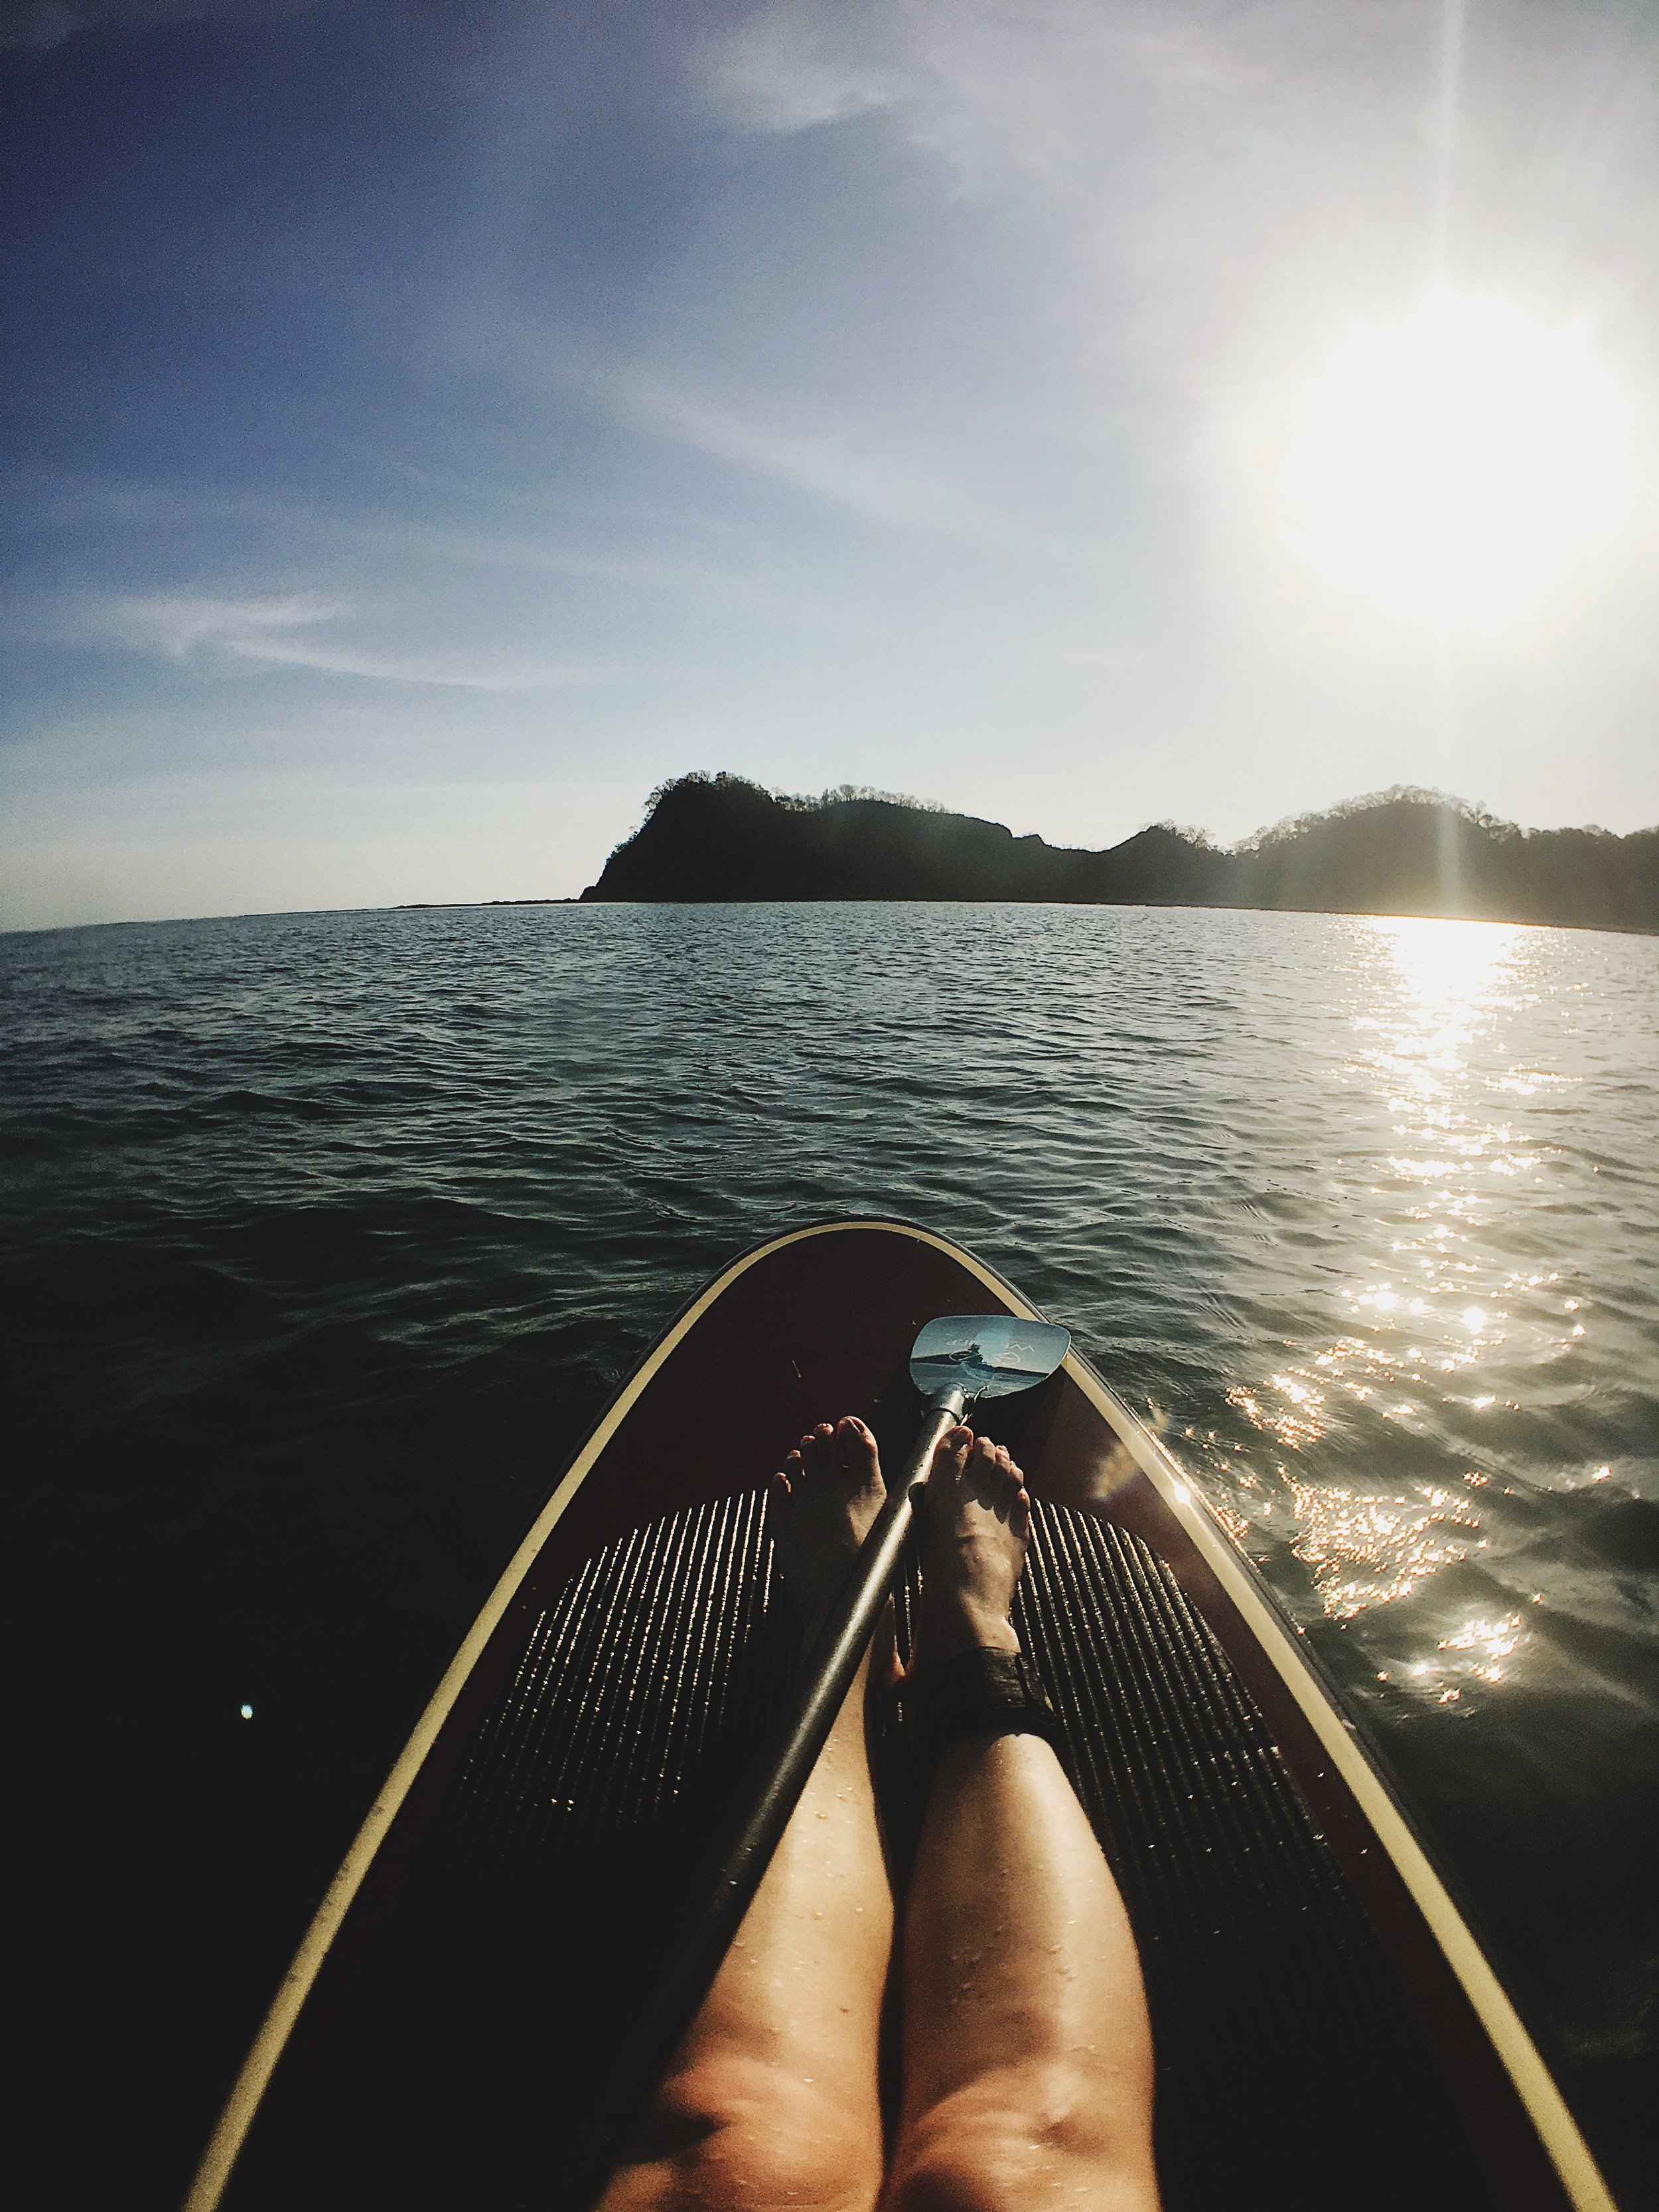 Adventures activities surfing snorkling kayak paddle board zipline ATV tour horseback ride aribada, sport fishing swimming beaches Ostional Guiones San Juanillo Costa Rica